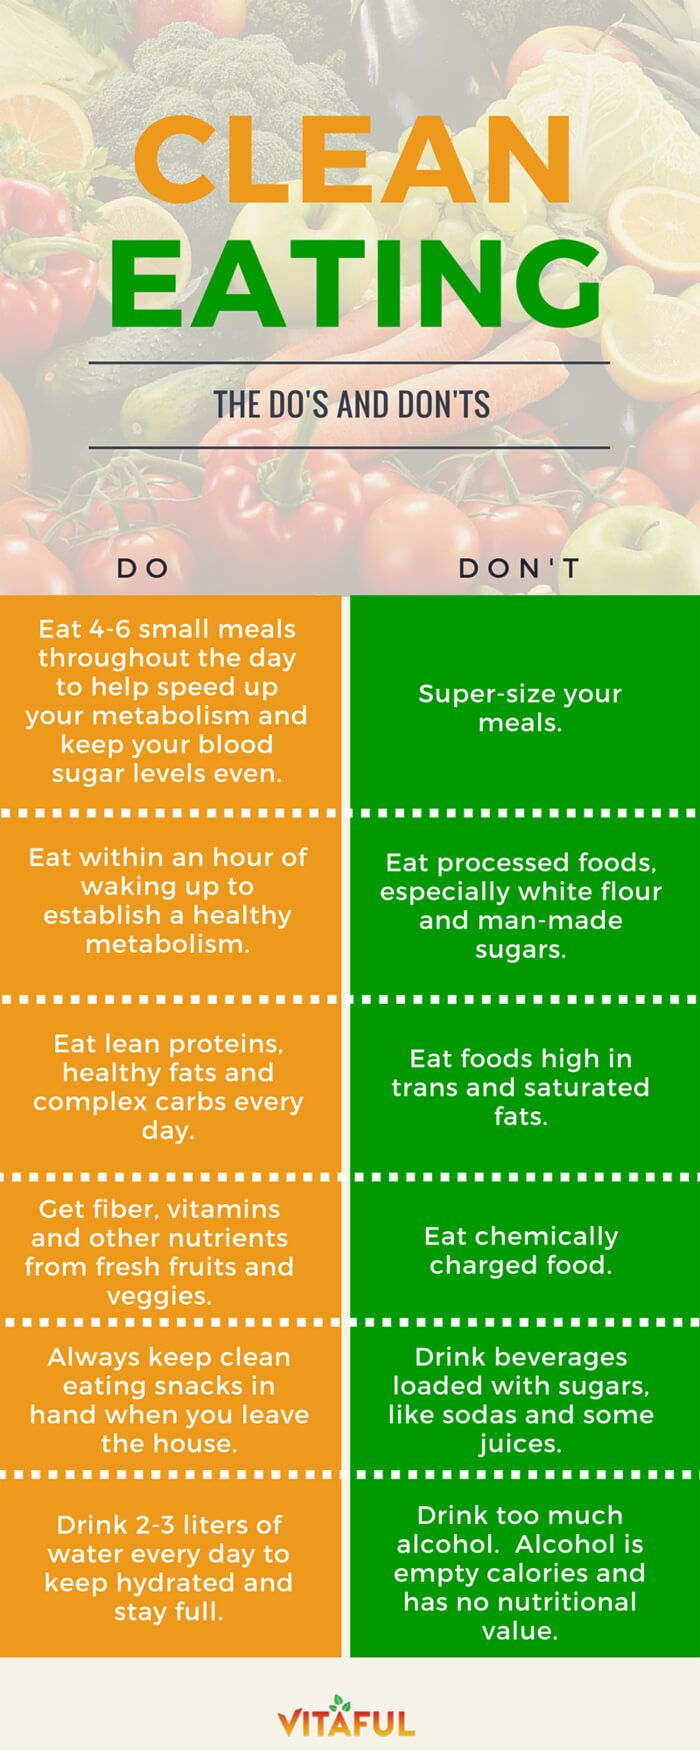 Clean Eating The Dos And Donts Clean Eating Clea